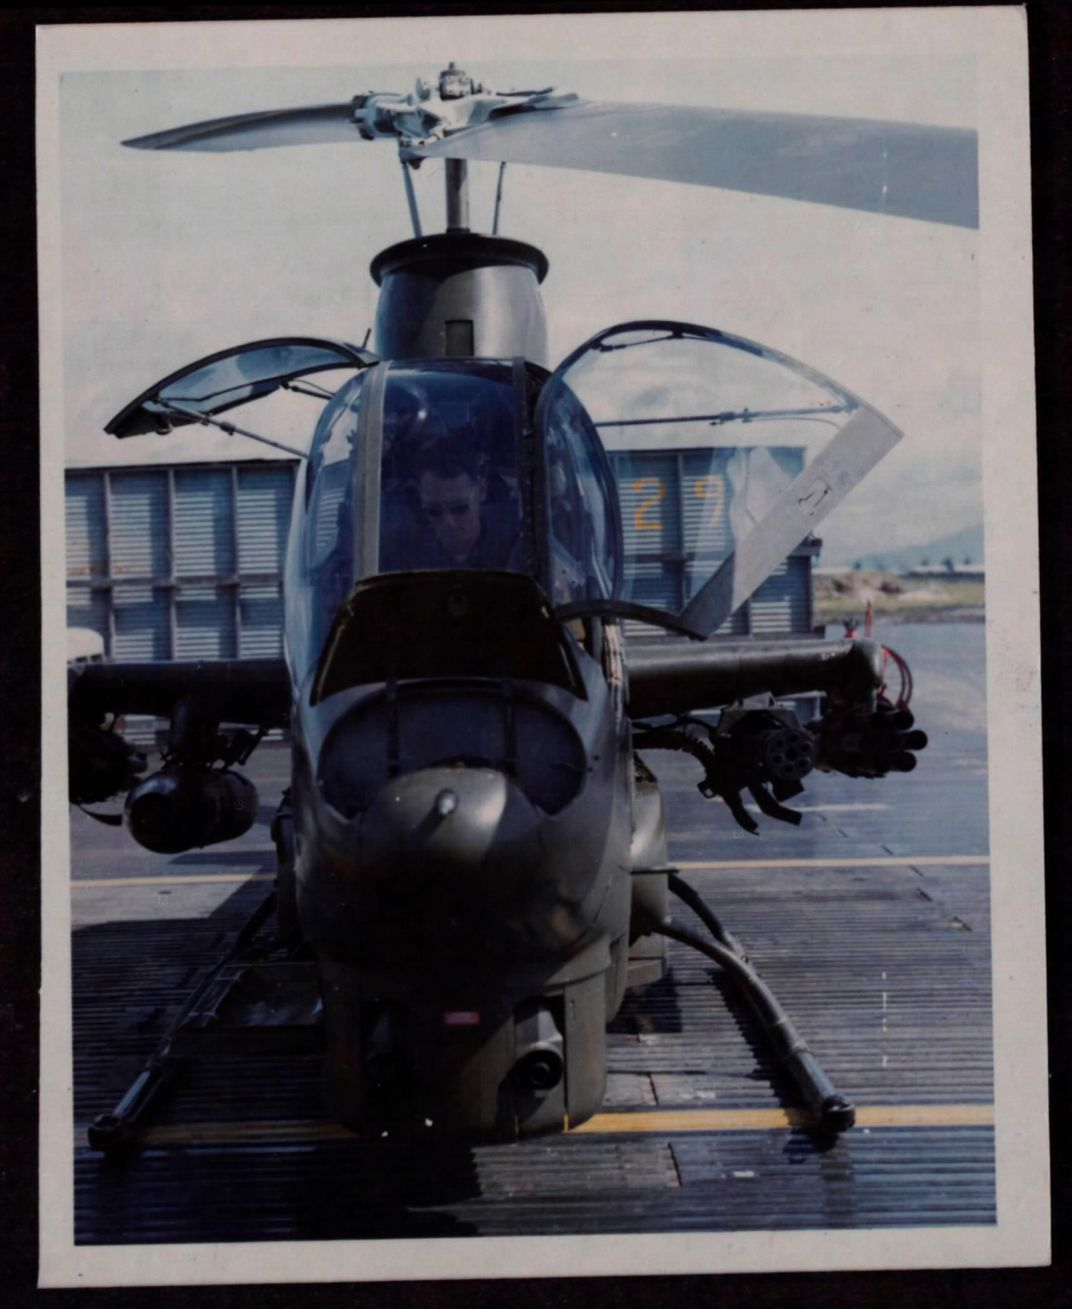 A Cobra at a flight school in Vietnam